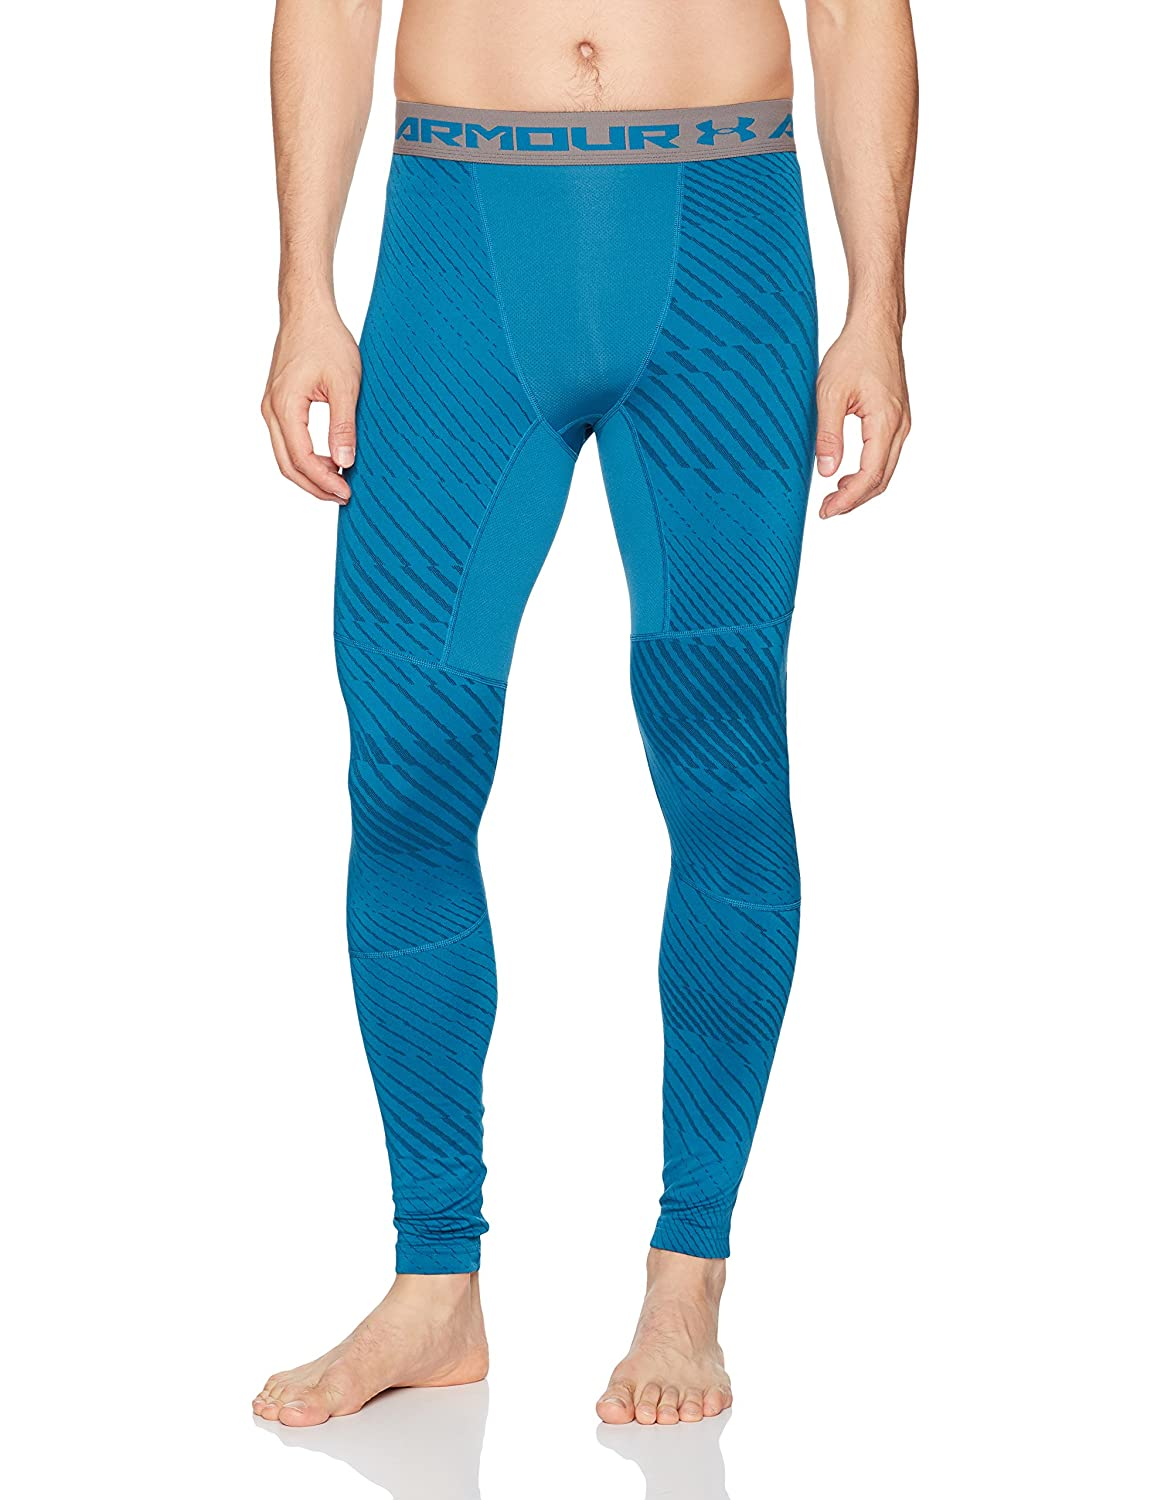 Under Armour Cg Armour Jacquard Legging - Bayou Blau//Graphite